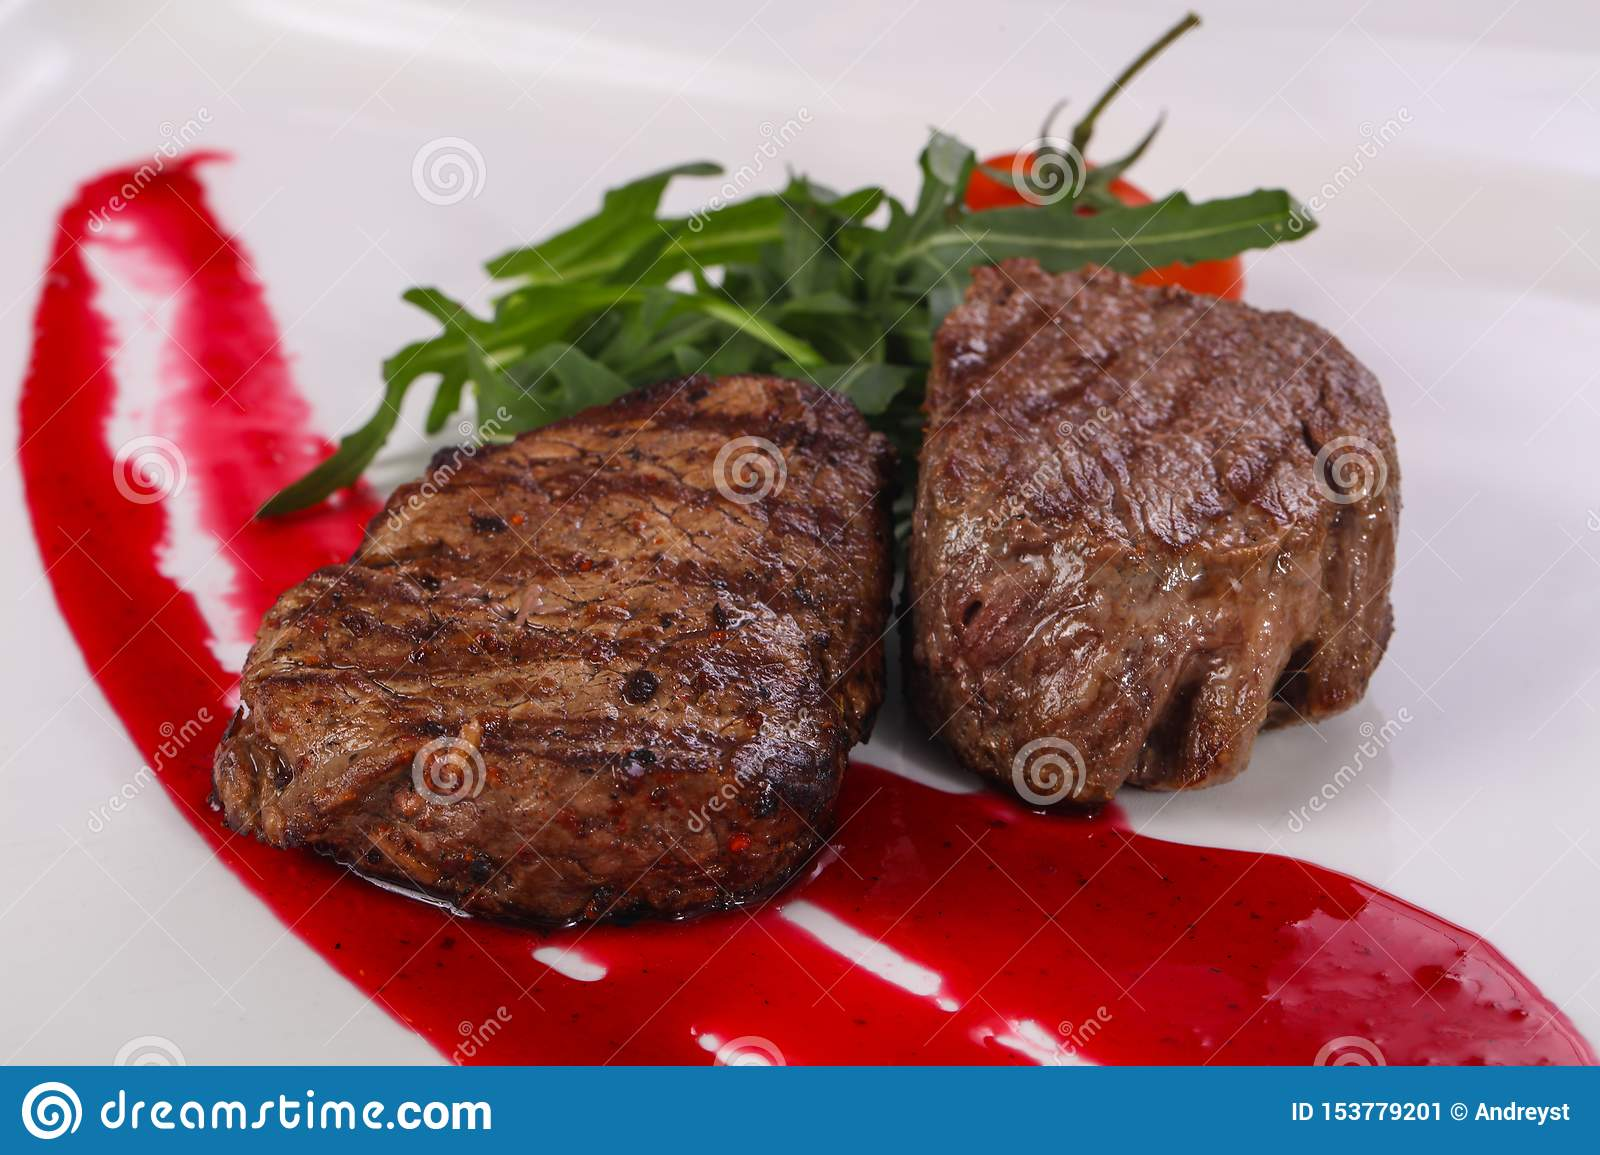 Beef steak with berry sauce